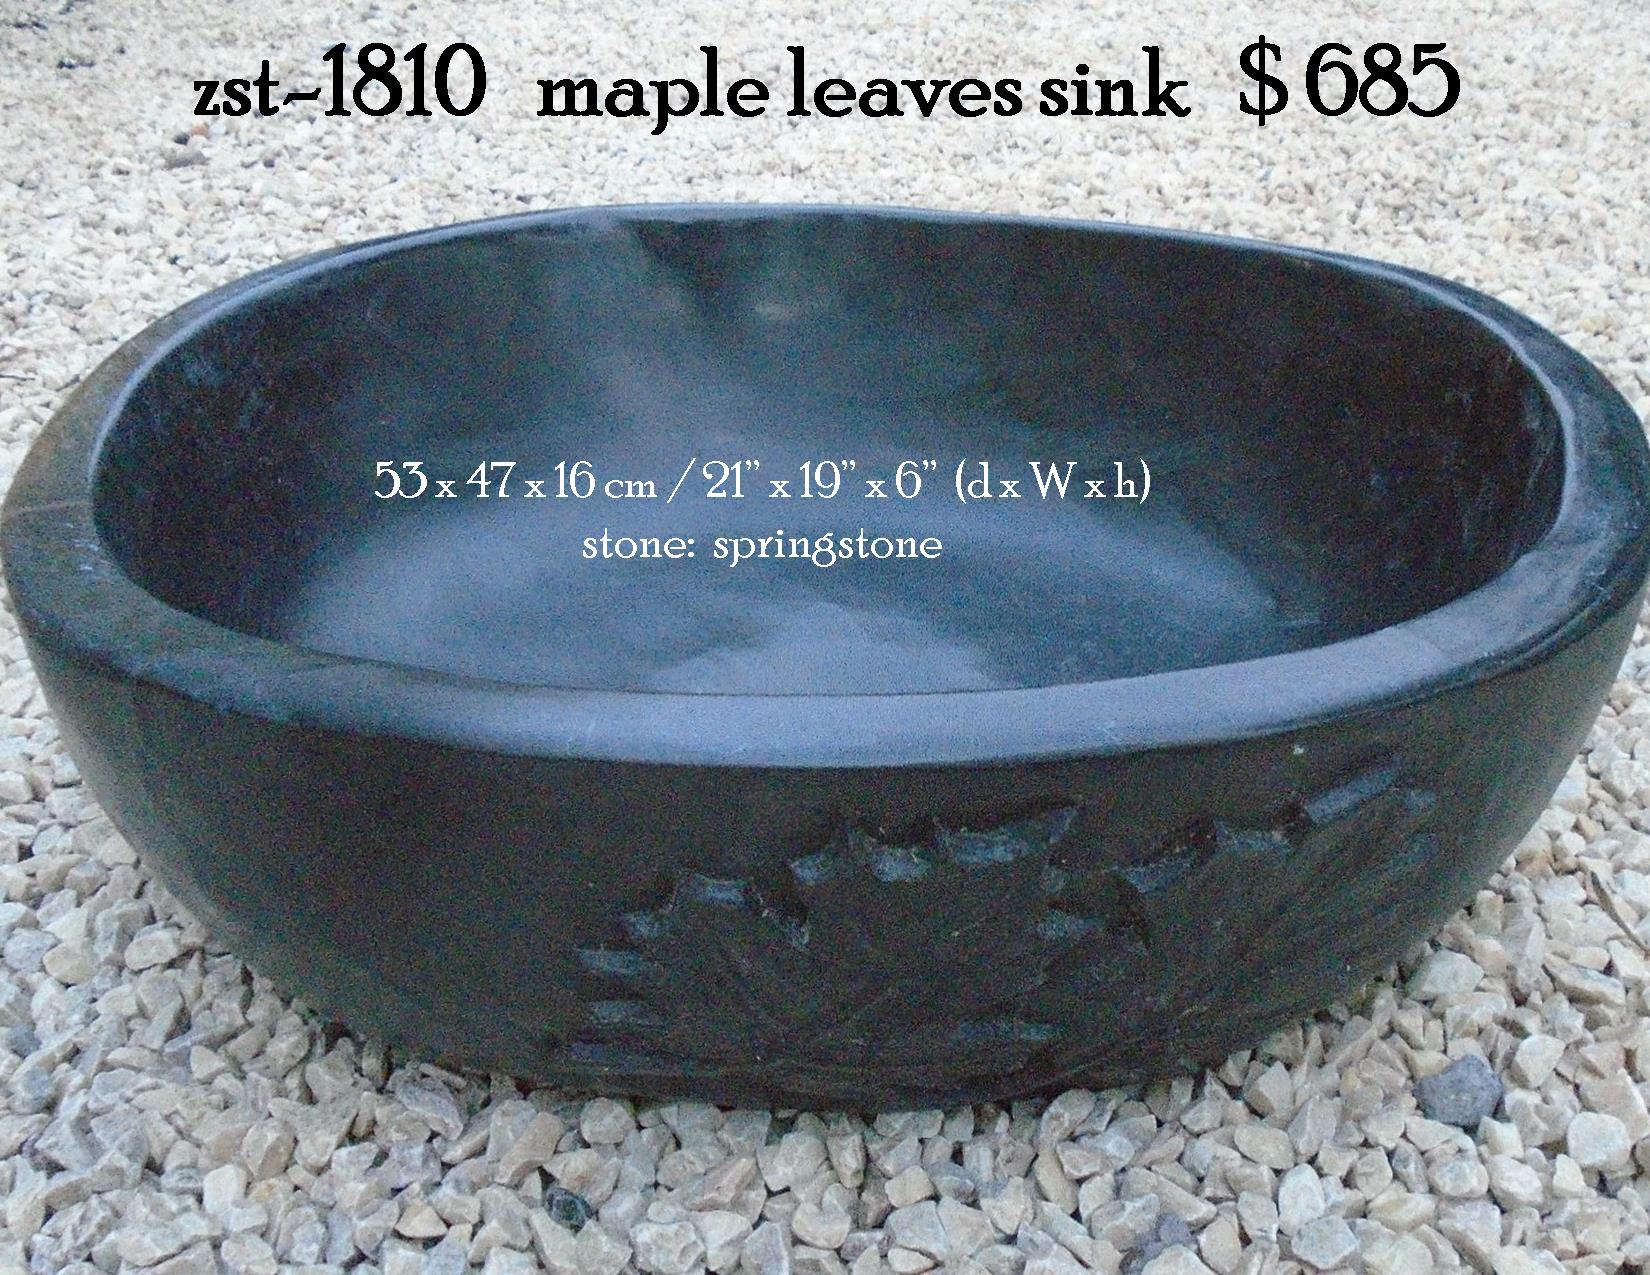 zst-1810   maple leaves sink